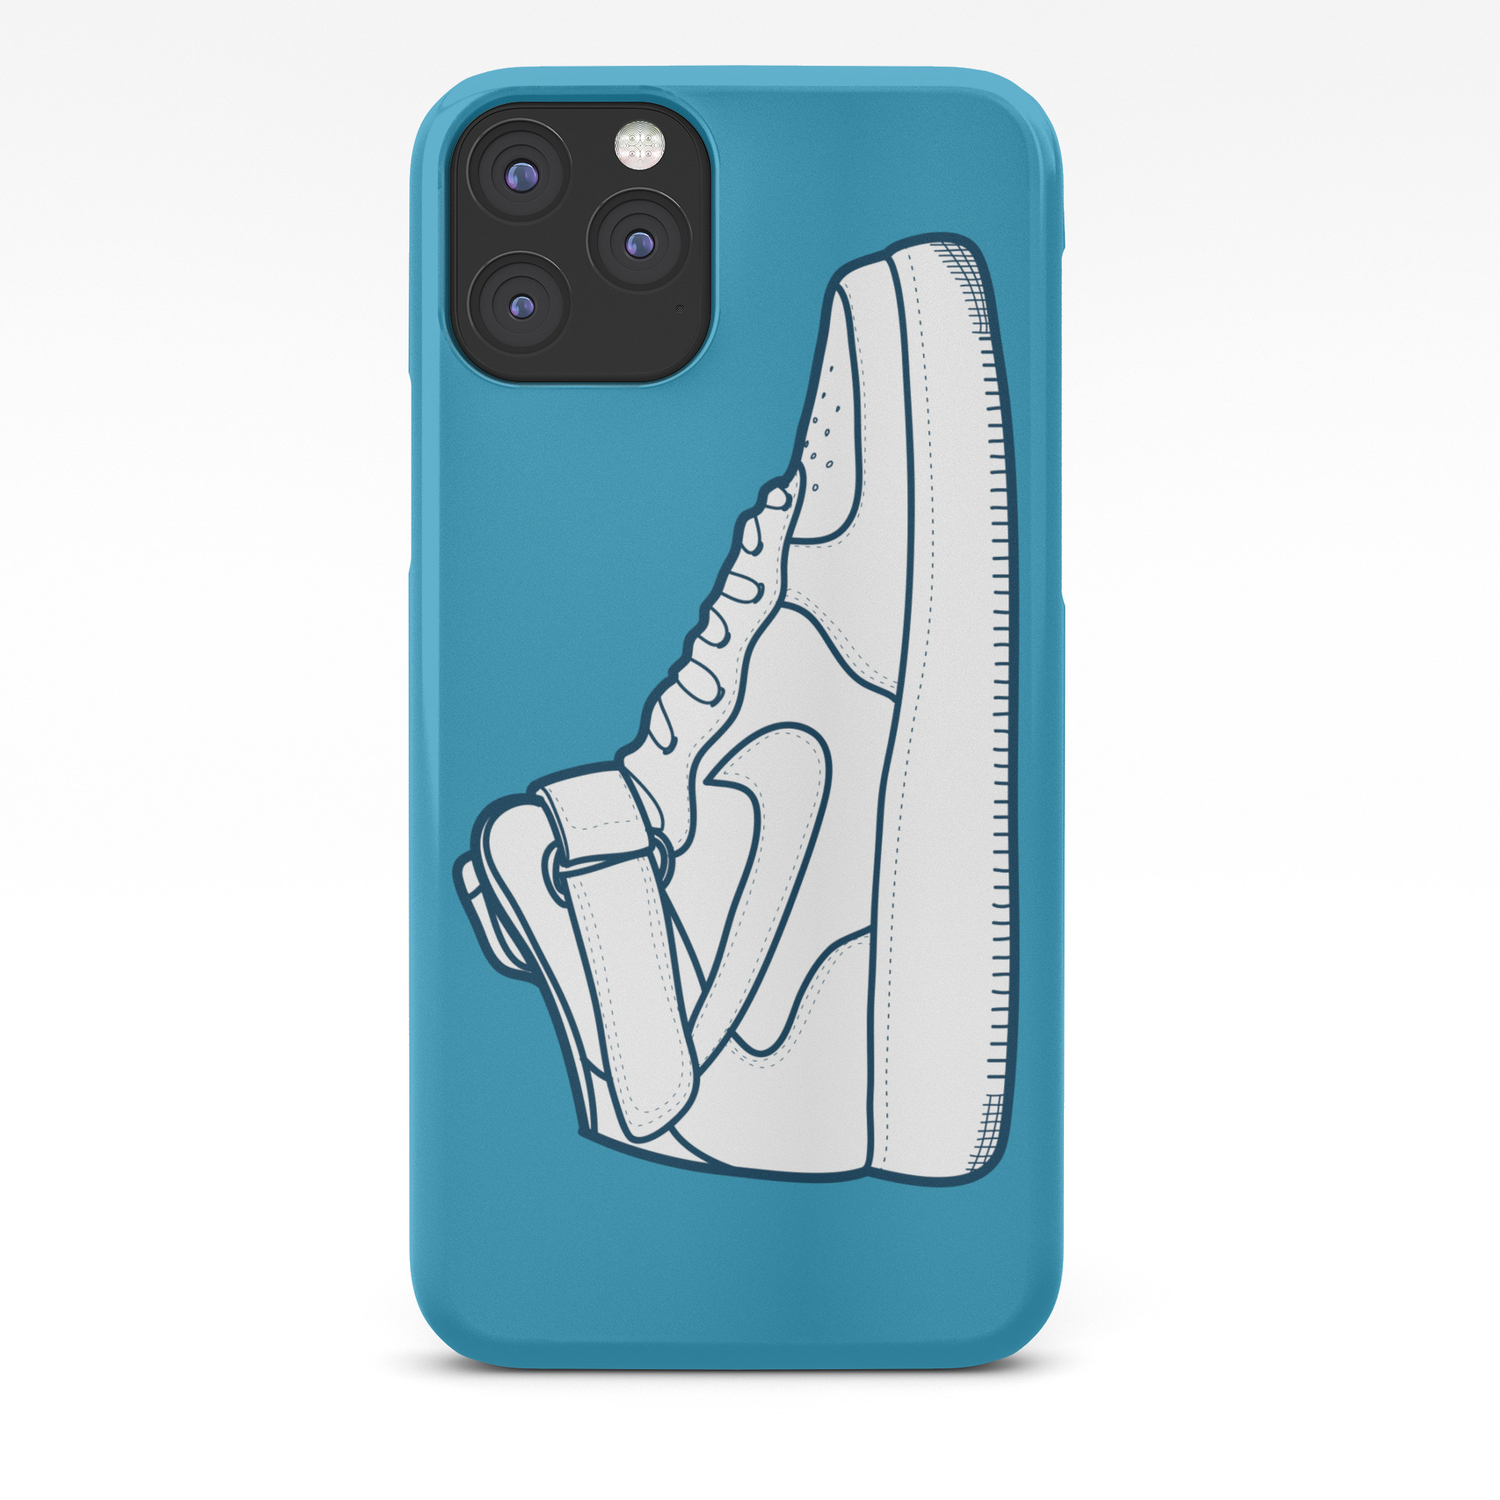 nike air force 1 iphone 6 case